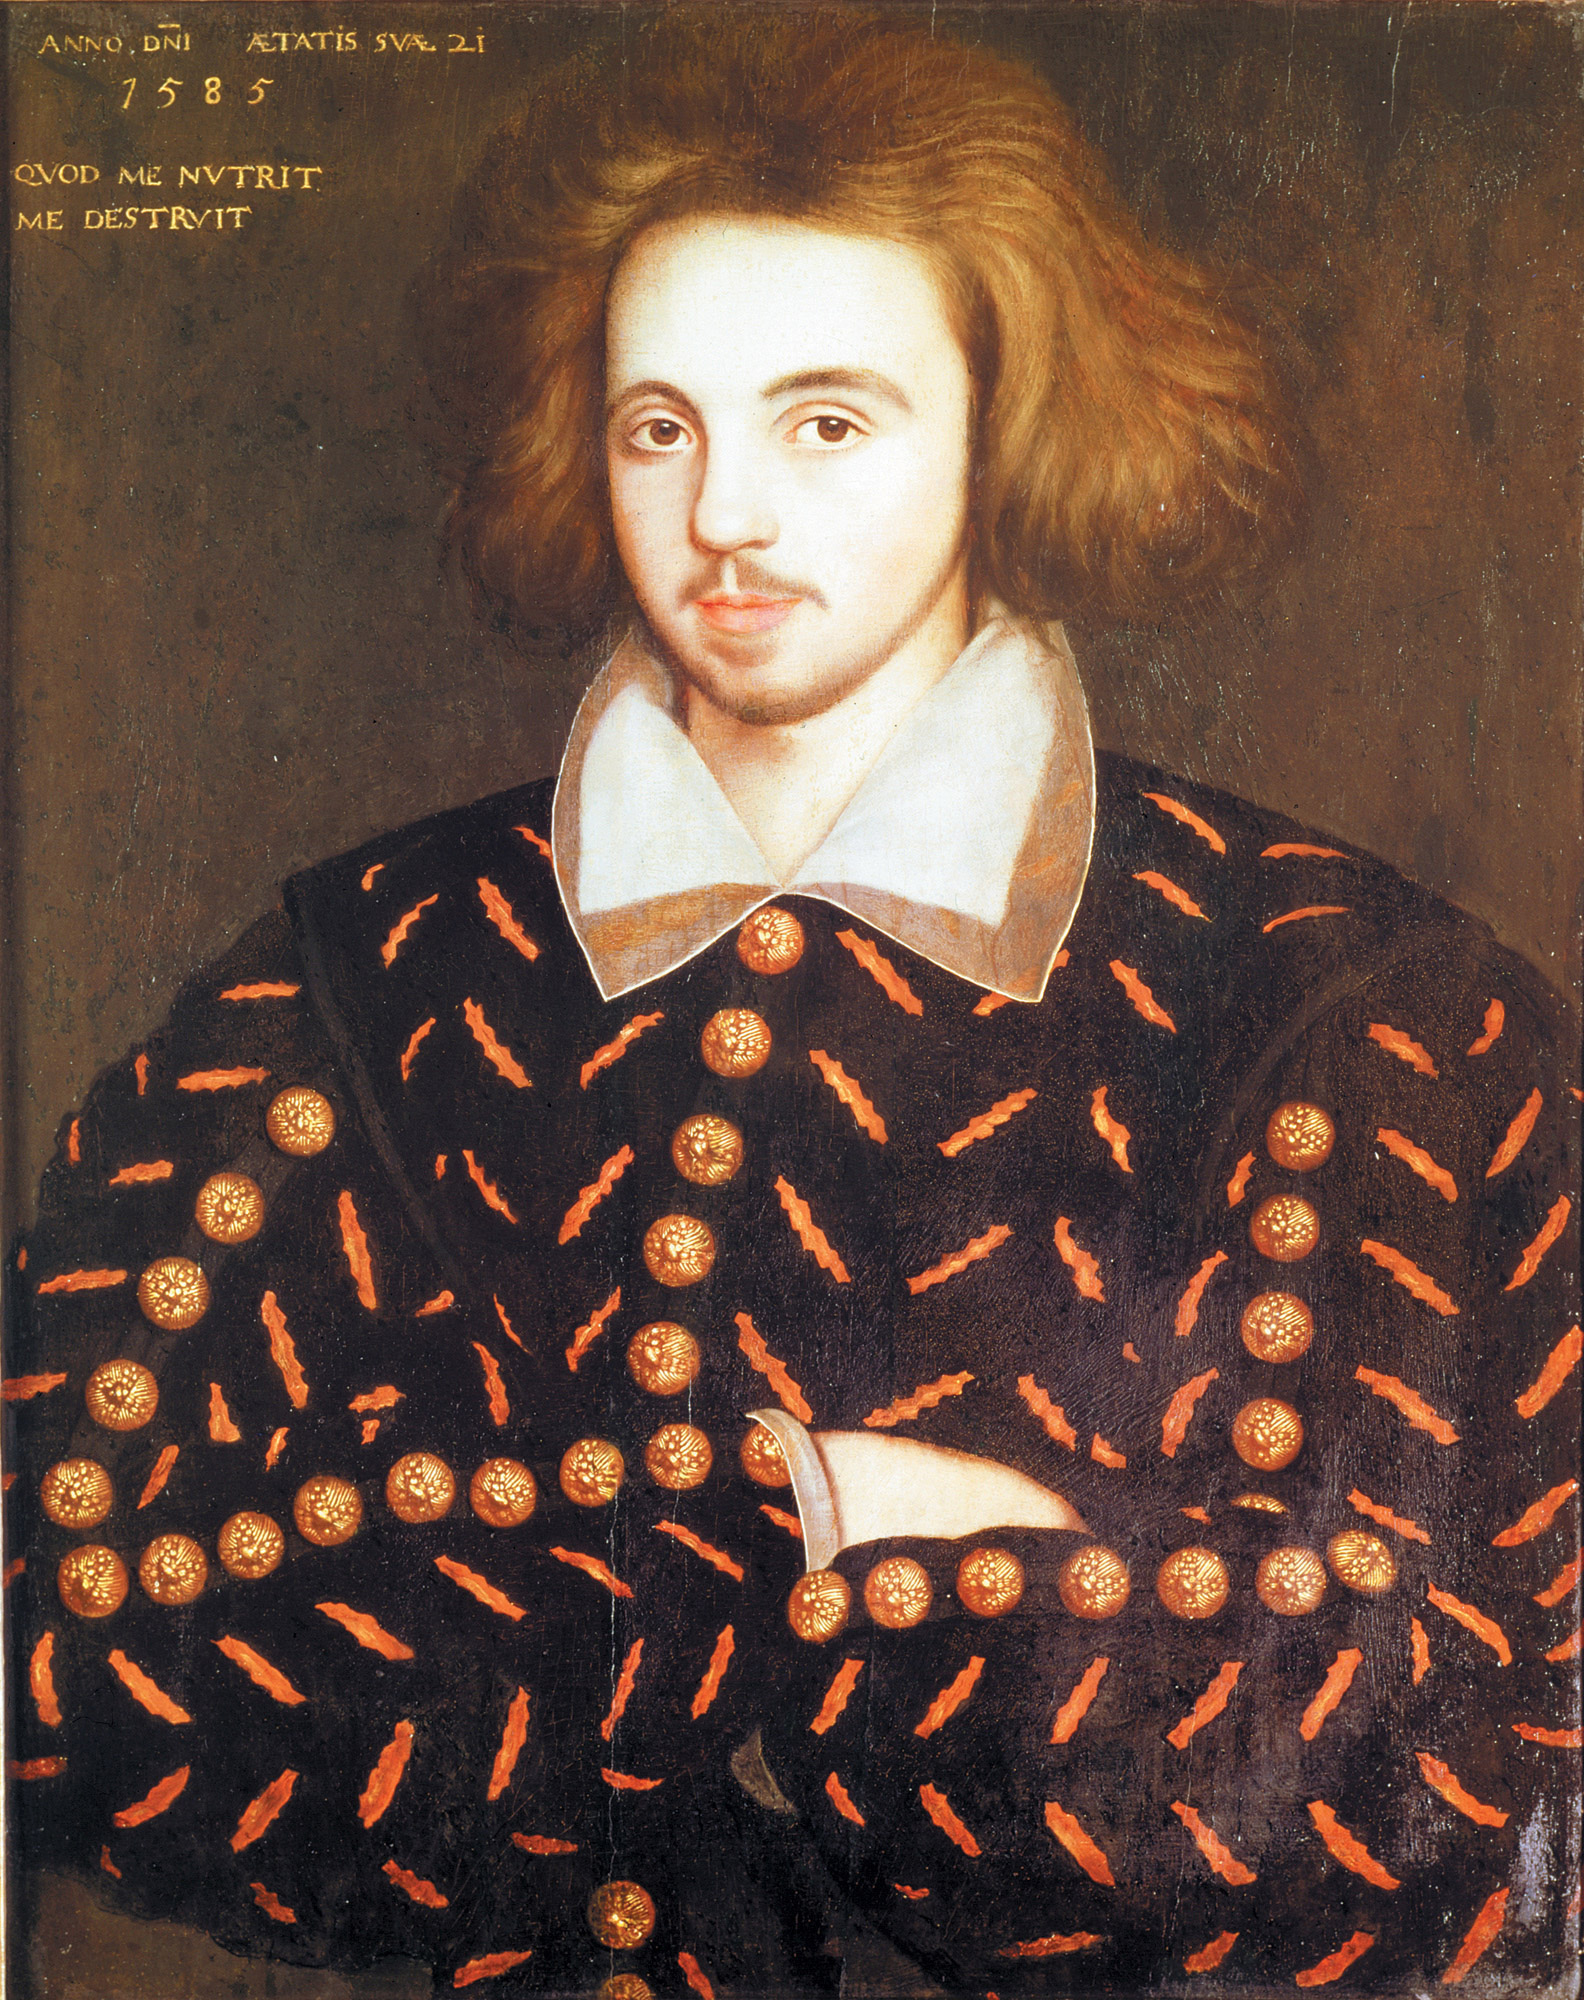 An anonymous portrait in [[Corpus Christi College, Cambridge]], believed to show Christopher Marlowe